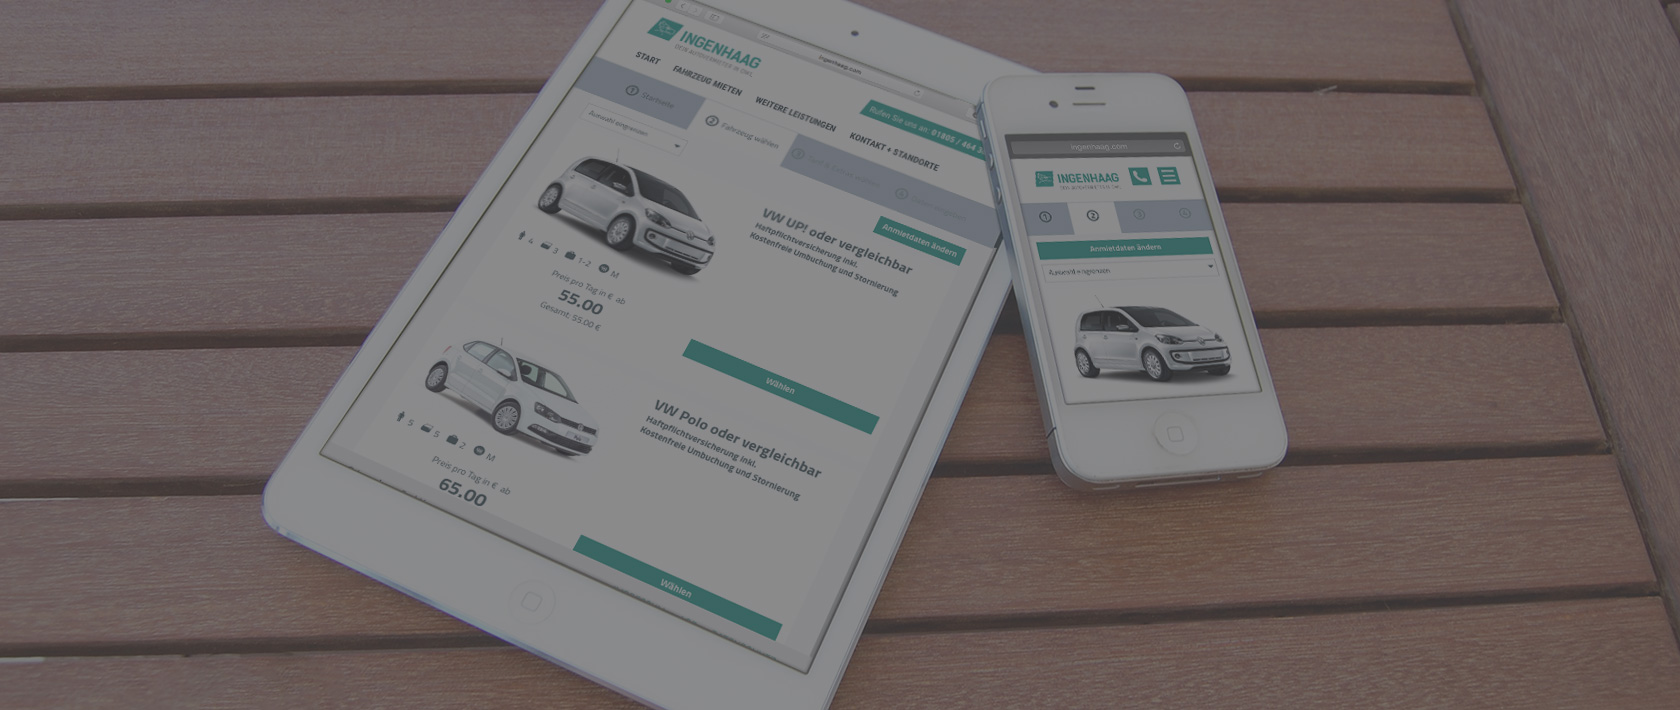 Tablet und Mobile Screen der Ingenhaag Autovermietung im neuen Corporate Design